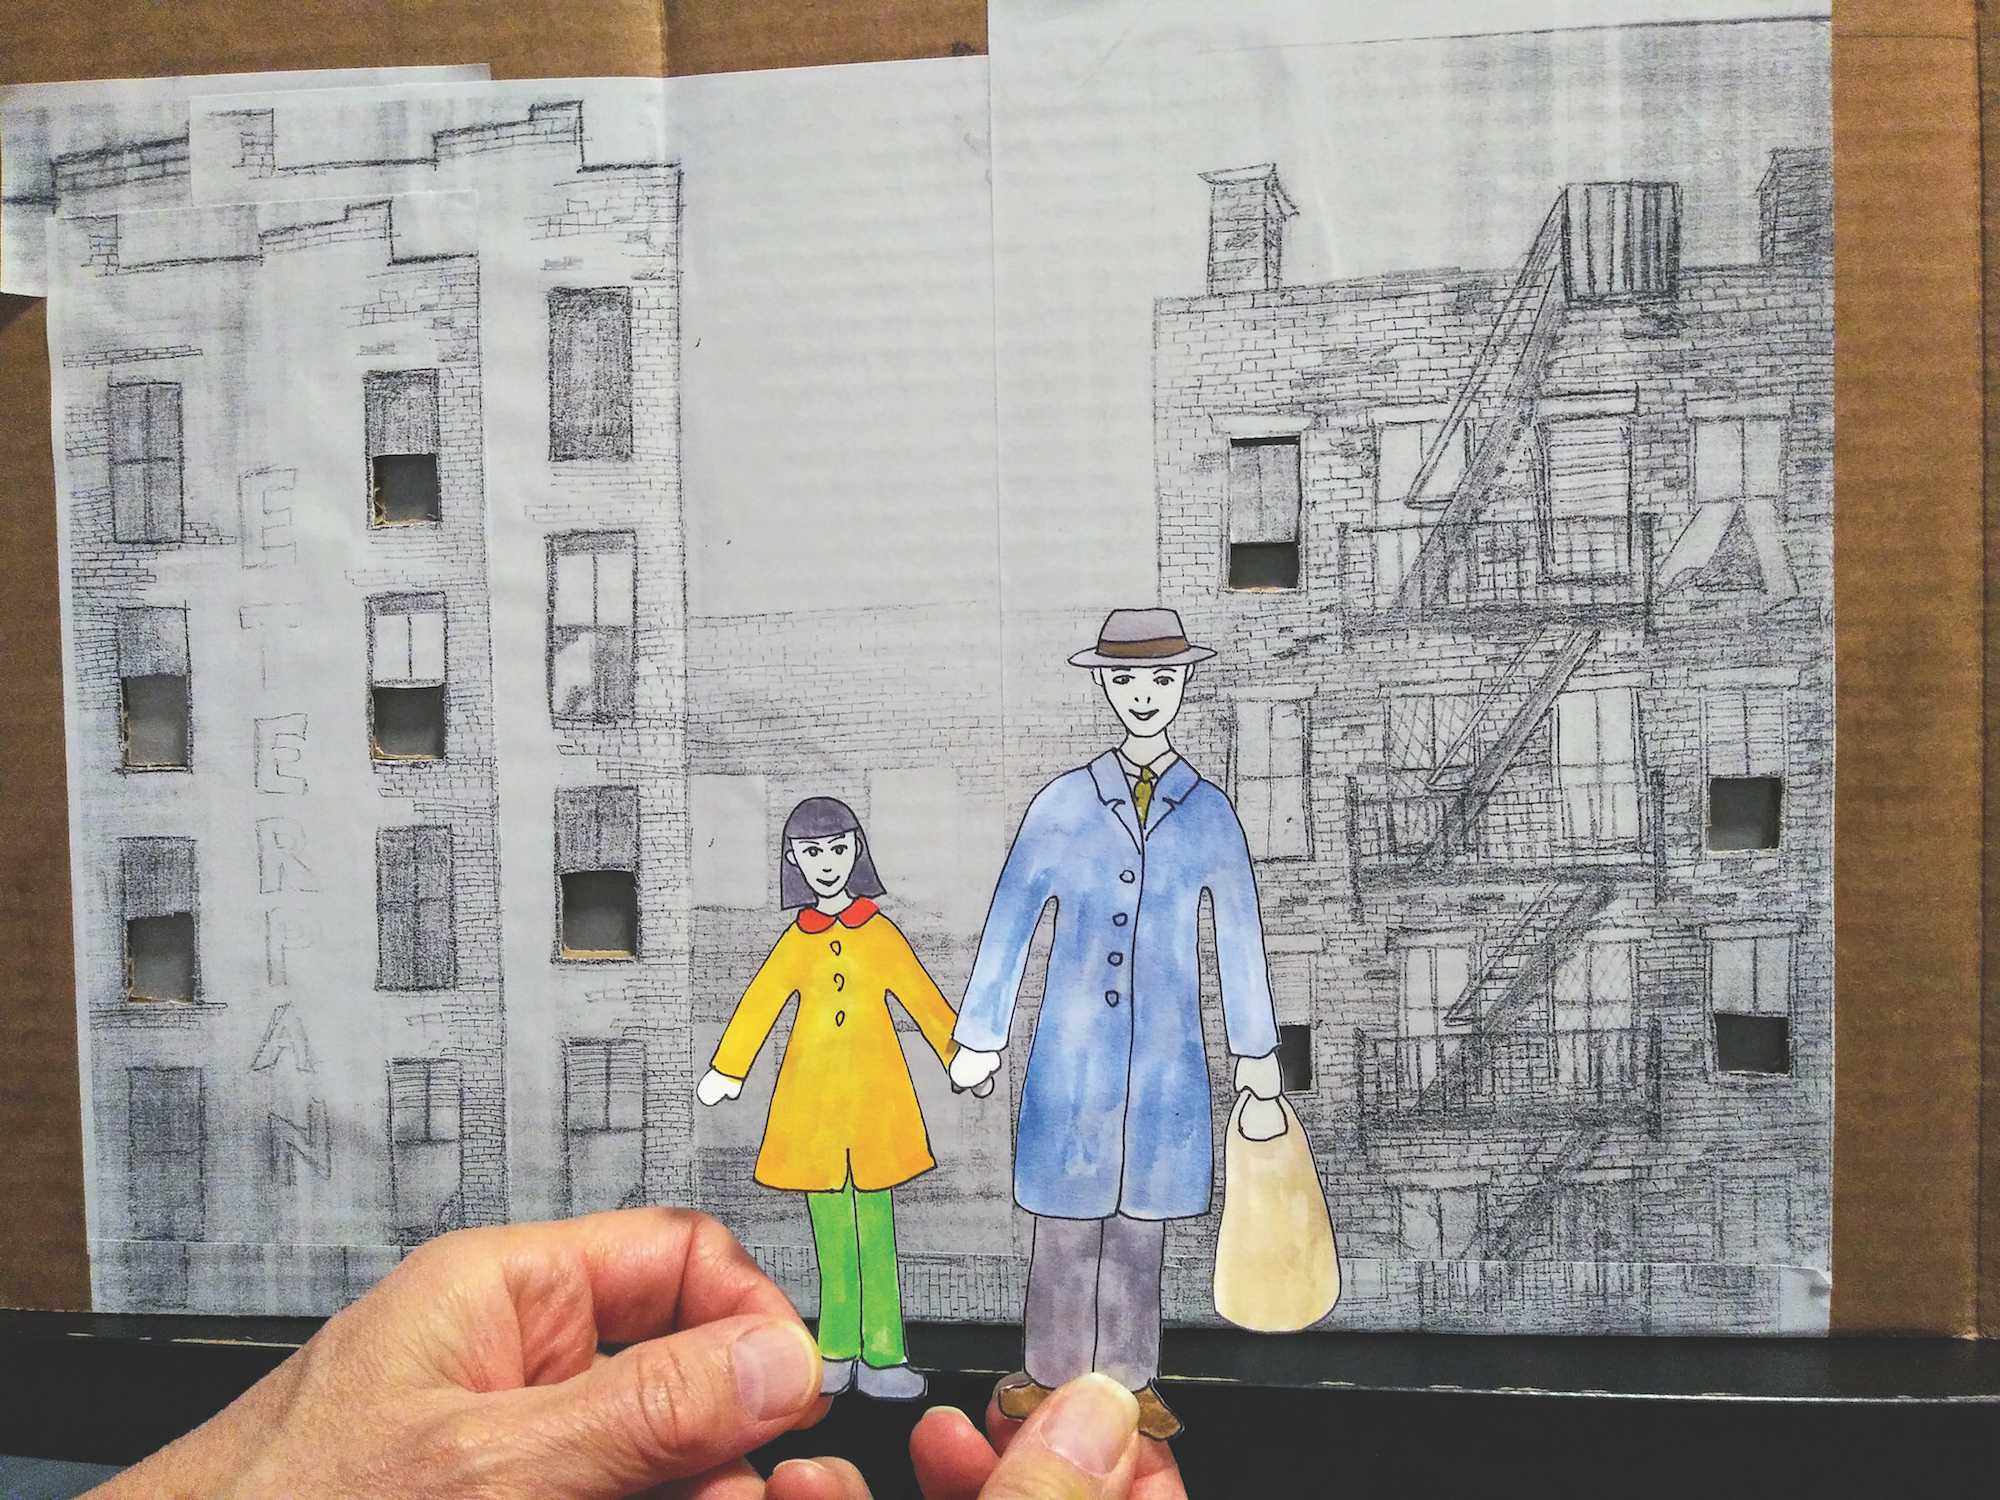 Two paper cut-outs of a man and a girl holding hands are held by two human hands. The man on the right is wearing a hat, a blue long coat, a tie, and pants, and is holding a tan bag in his left hand. The girl has dark hair, a yellow shirt with a red collar, and green pants. Behind them is a backdrop with brick buildings drawn in pencil.